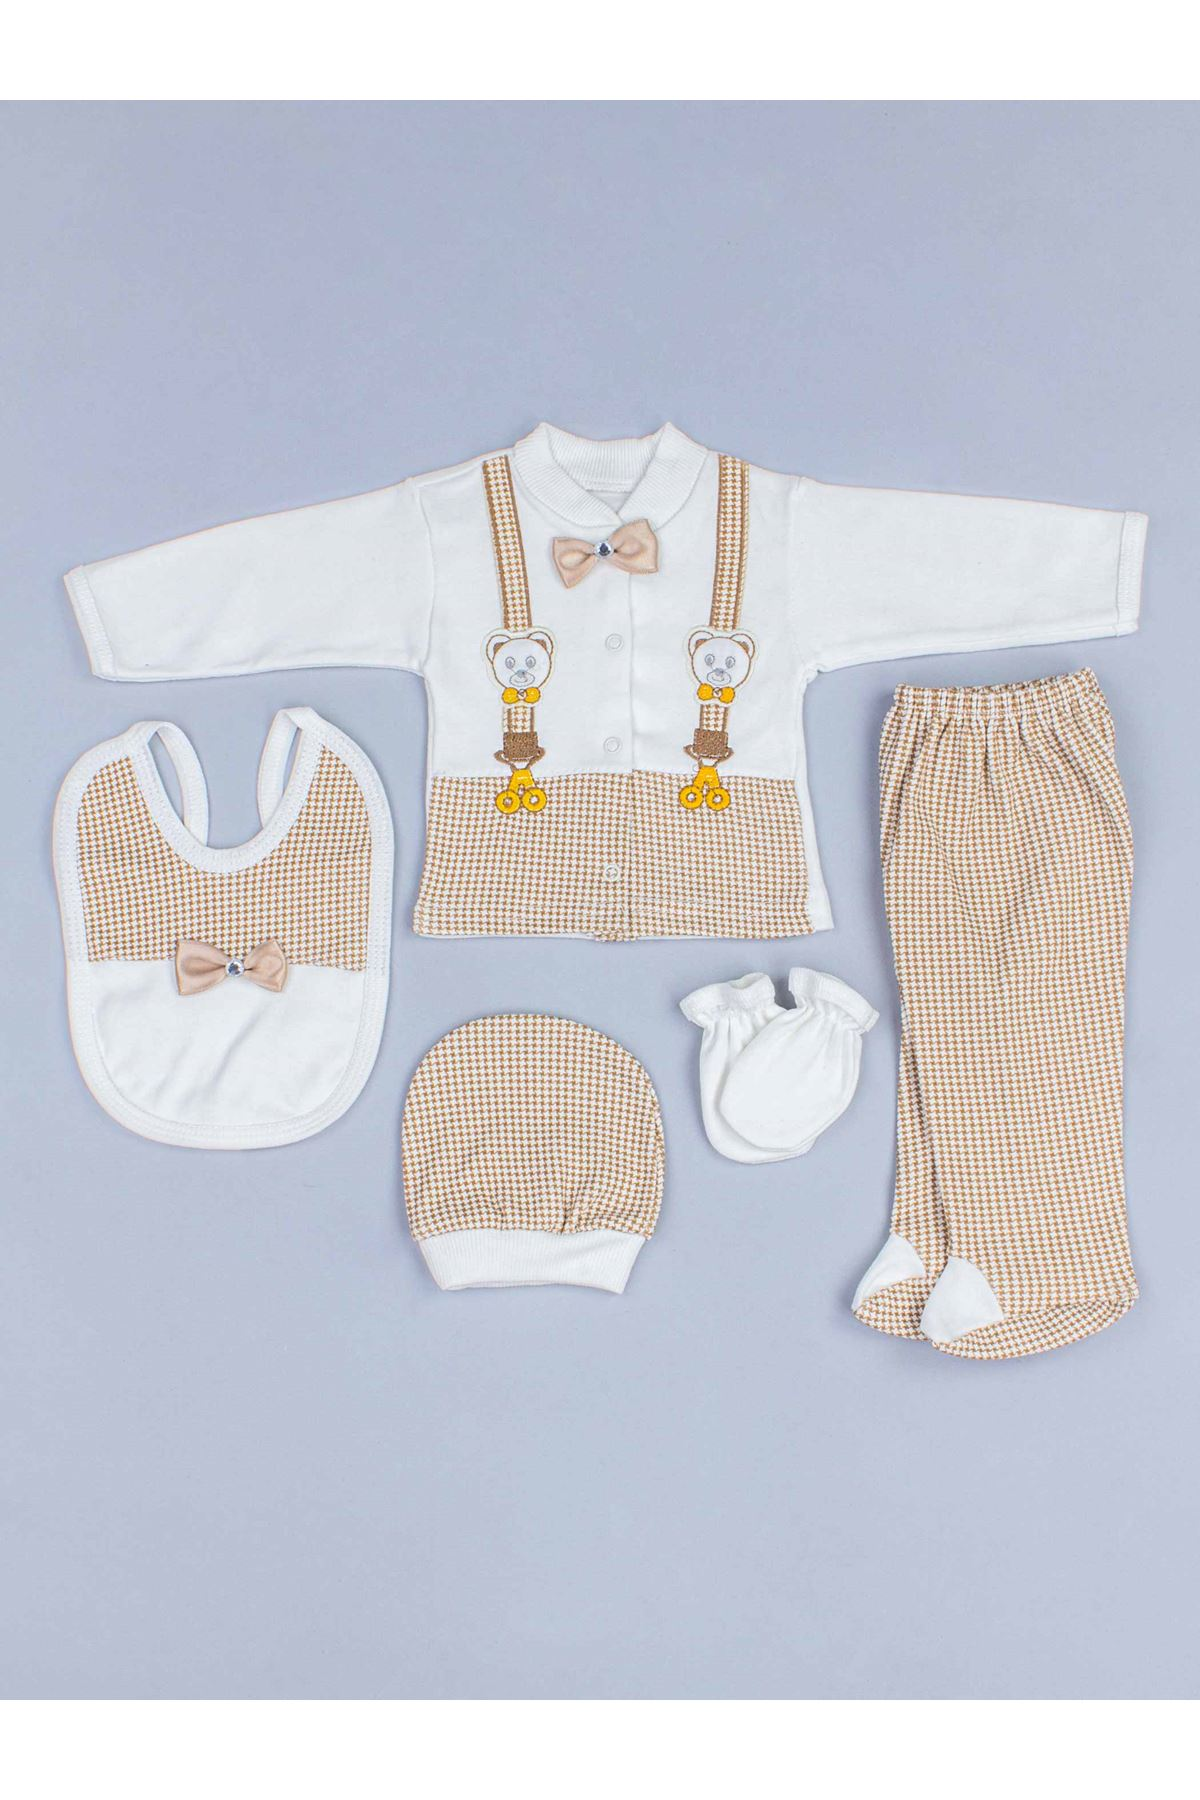 Newborn Baby Boy Brown 5 piece suit set cotton Gentleman Hospital Outlet daily casual Babies clothes style fashion models